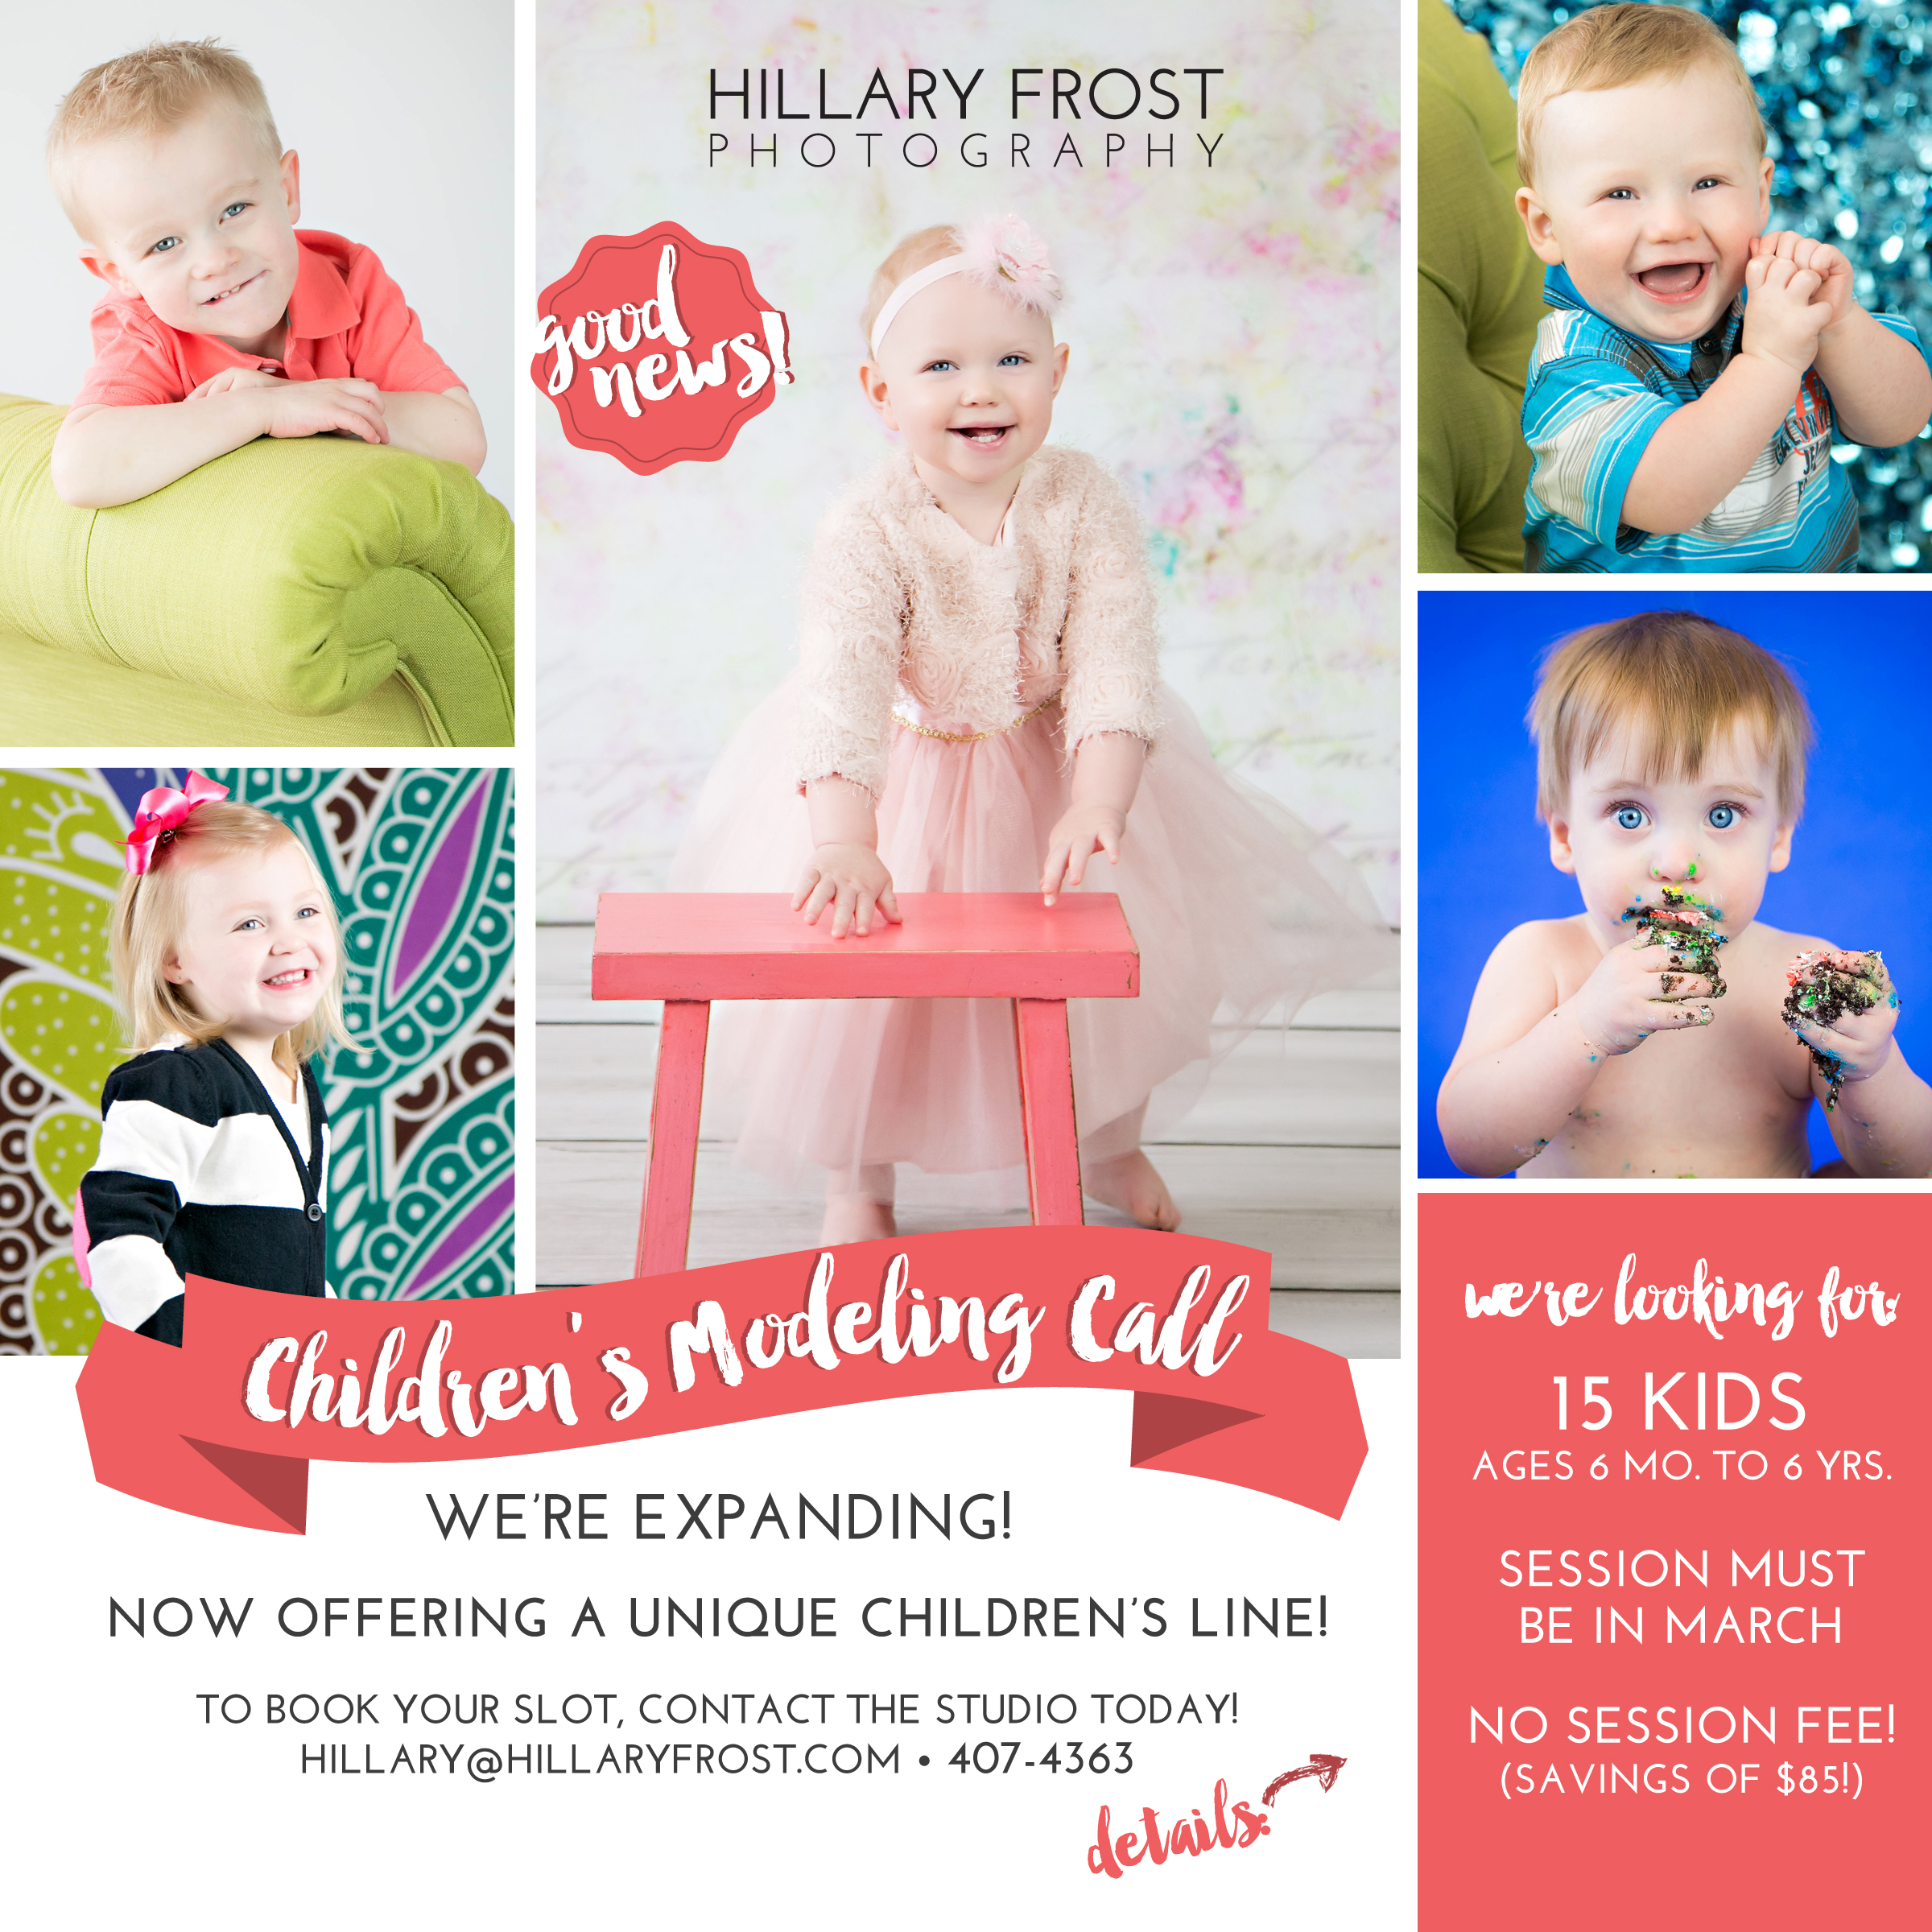 Hillary Frost Photography, Children's Photography